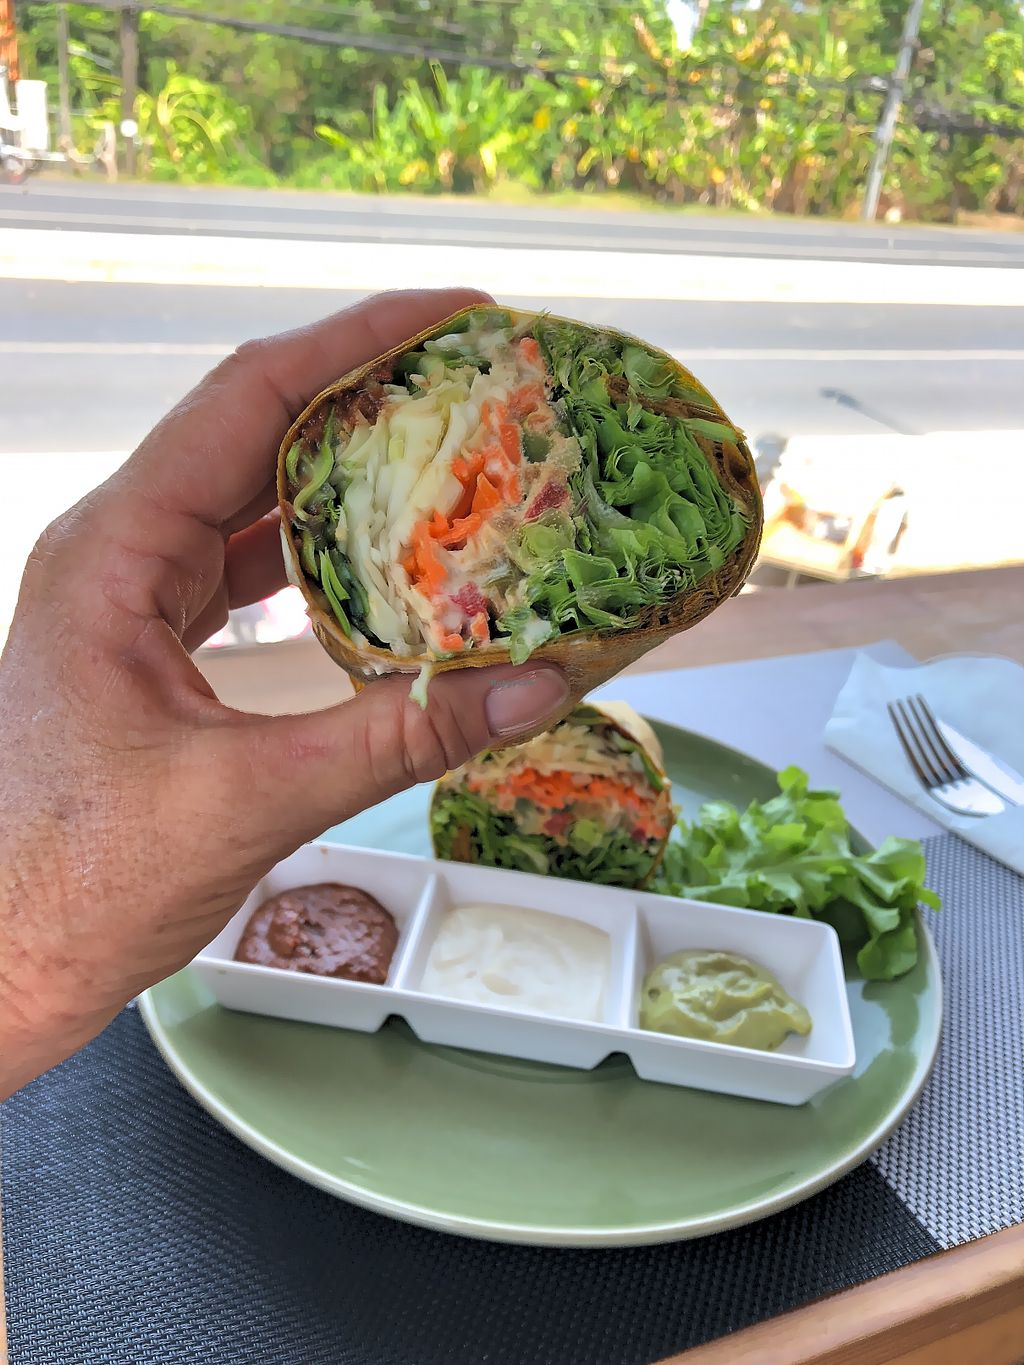 """Photo of Atsumi Raw Cafe  by <a href=""""/members/profile/SoniaGivray"""">SoniaGivray</a> <br/>Burrito, very nice <br/> April 22, 2018  - <a href='/contact/abuse/image/36812/389258'>Report</a>"""